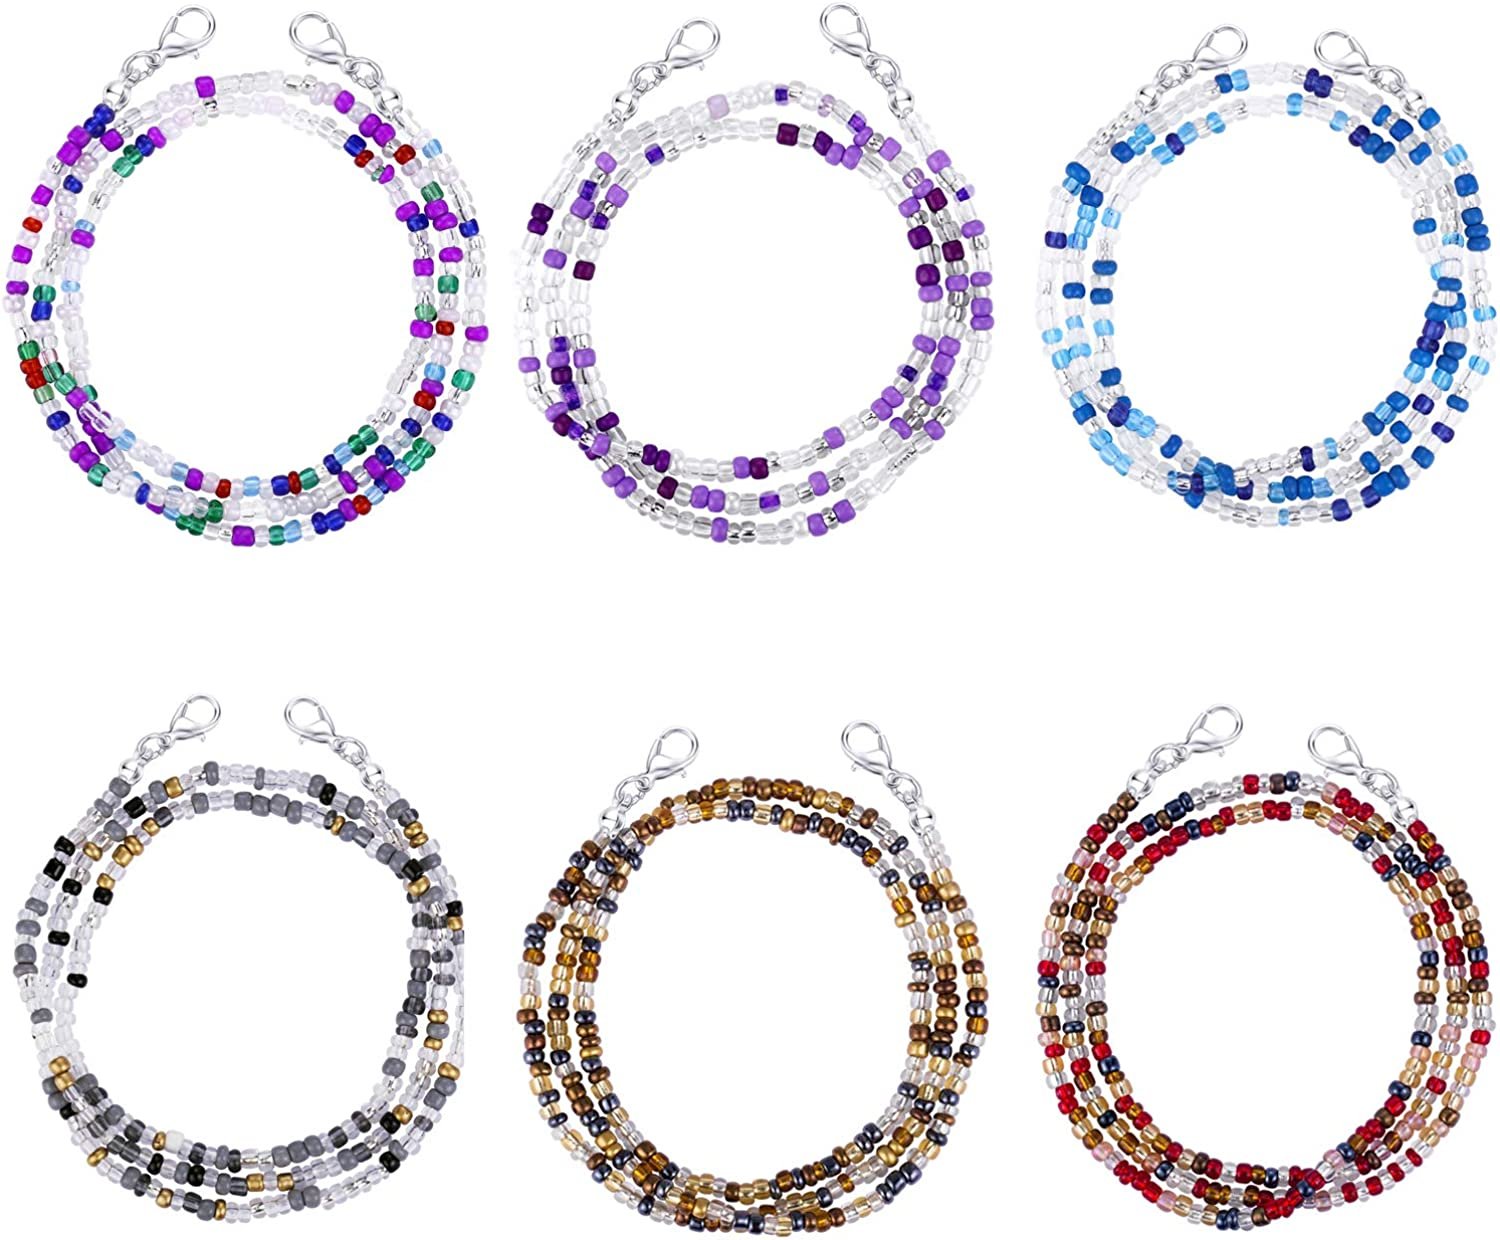 Annamate 6-9 Pack Eyeglass Chains Mask Holder Eyeglass Beaded Chains and Cords Suitable for Women Kids